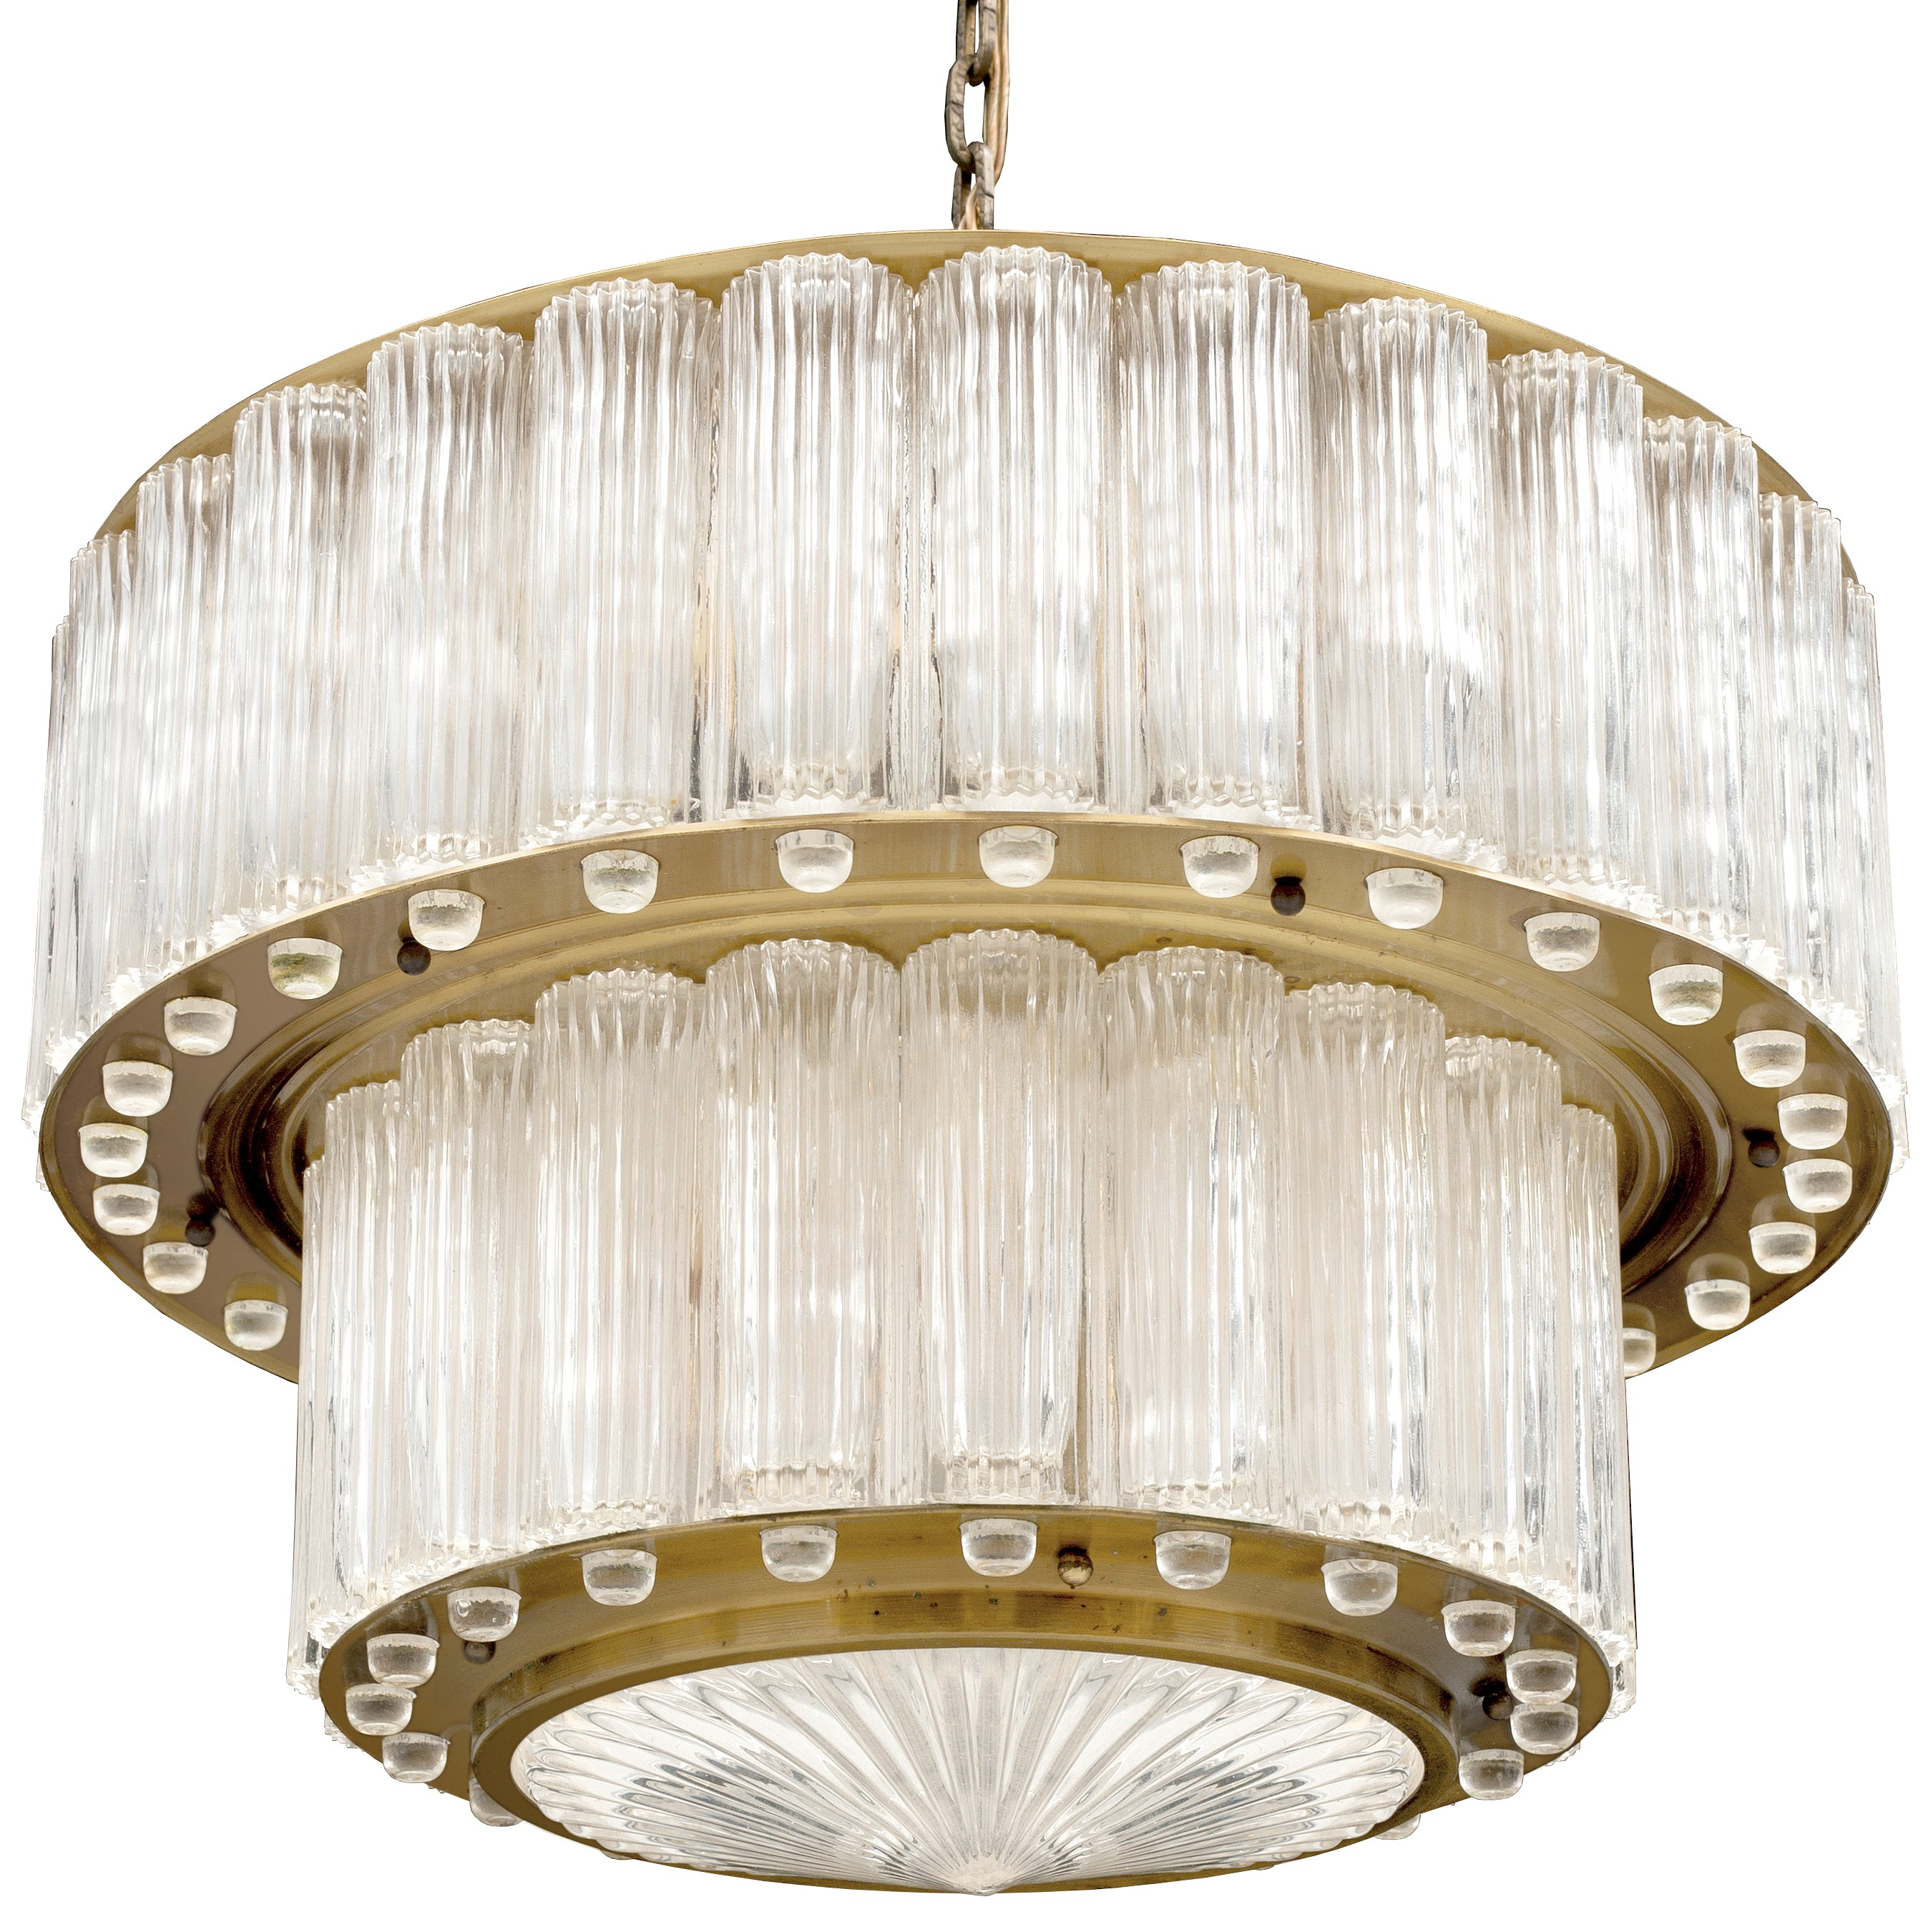 1940s austrian two tiered fluted glass and brass chandelier 1940s austrian two tiered fluted glass and brass chandelier chandeliers and pendants lighting inventory aloadofball Image collections